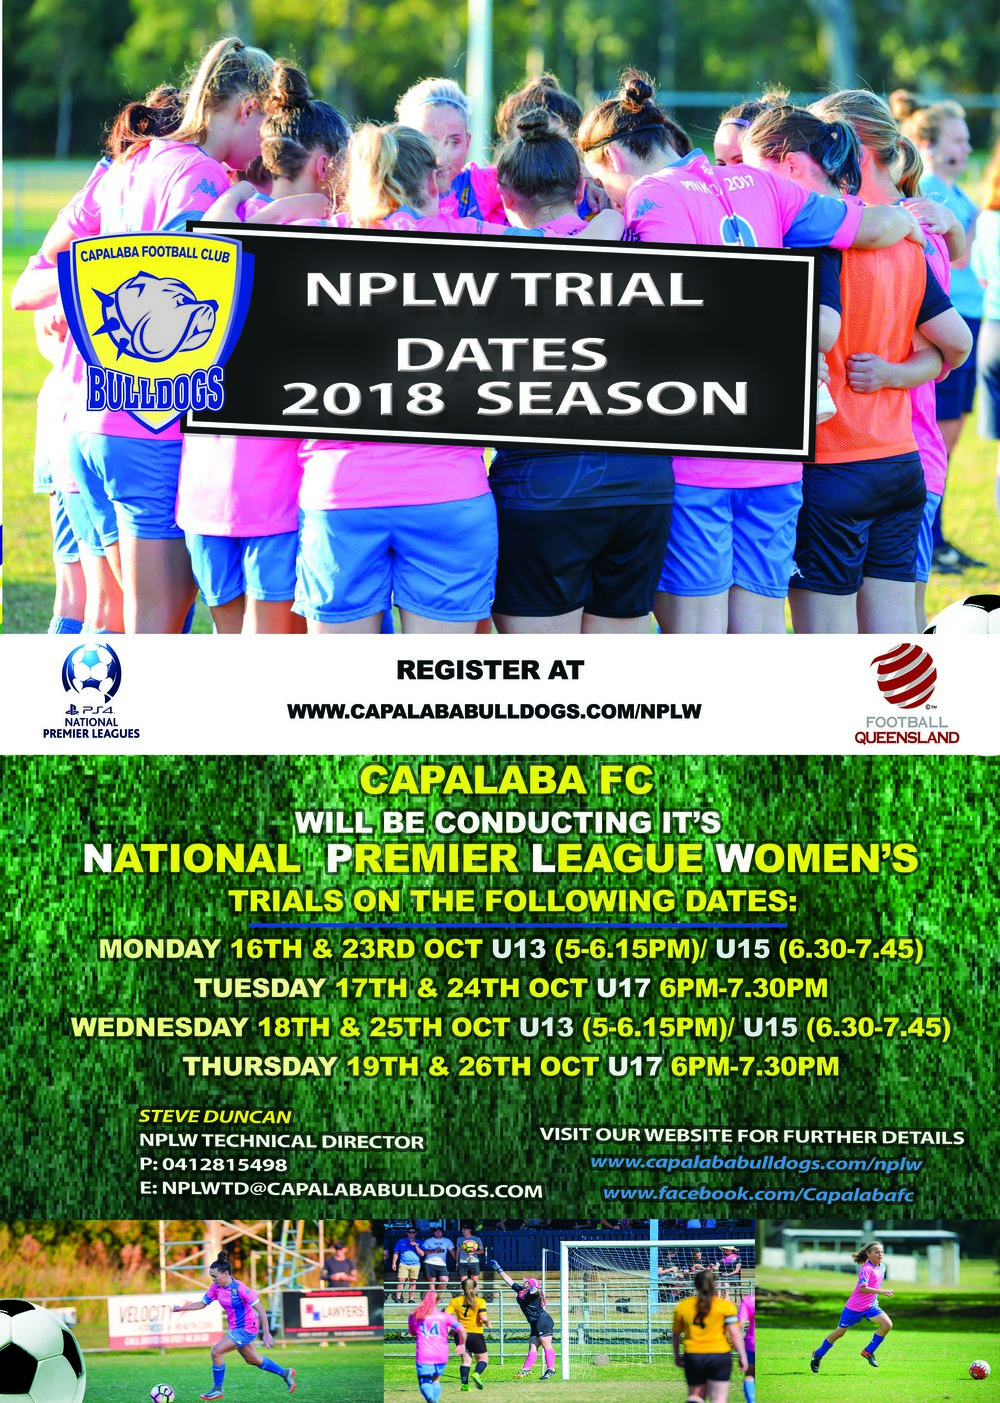 Capalaba FC NPLW Trial Dates 2017 Flyer Phase 2 3.jpg